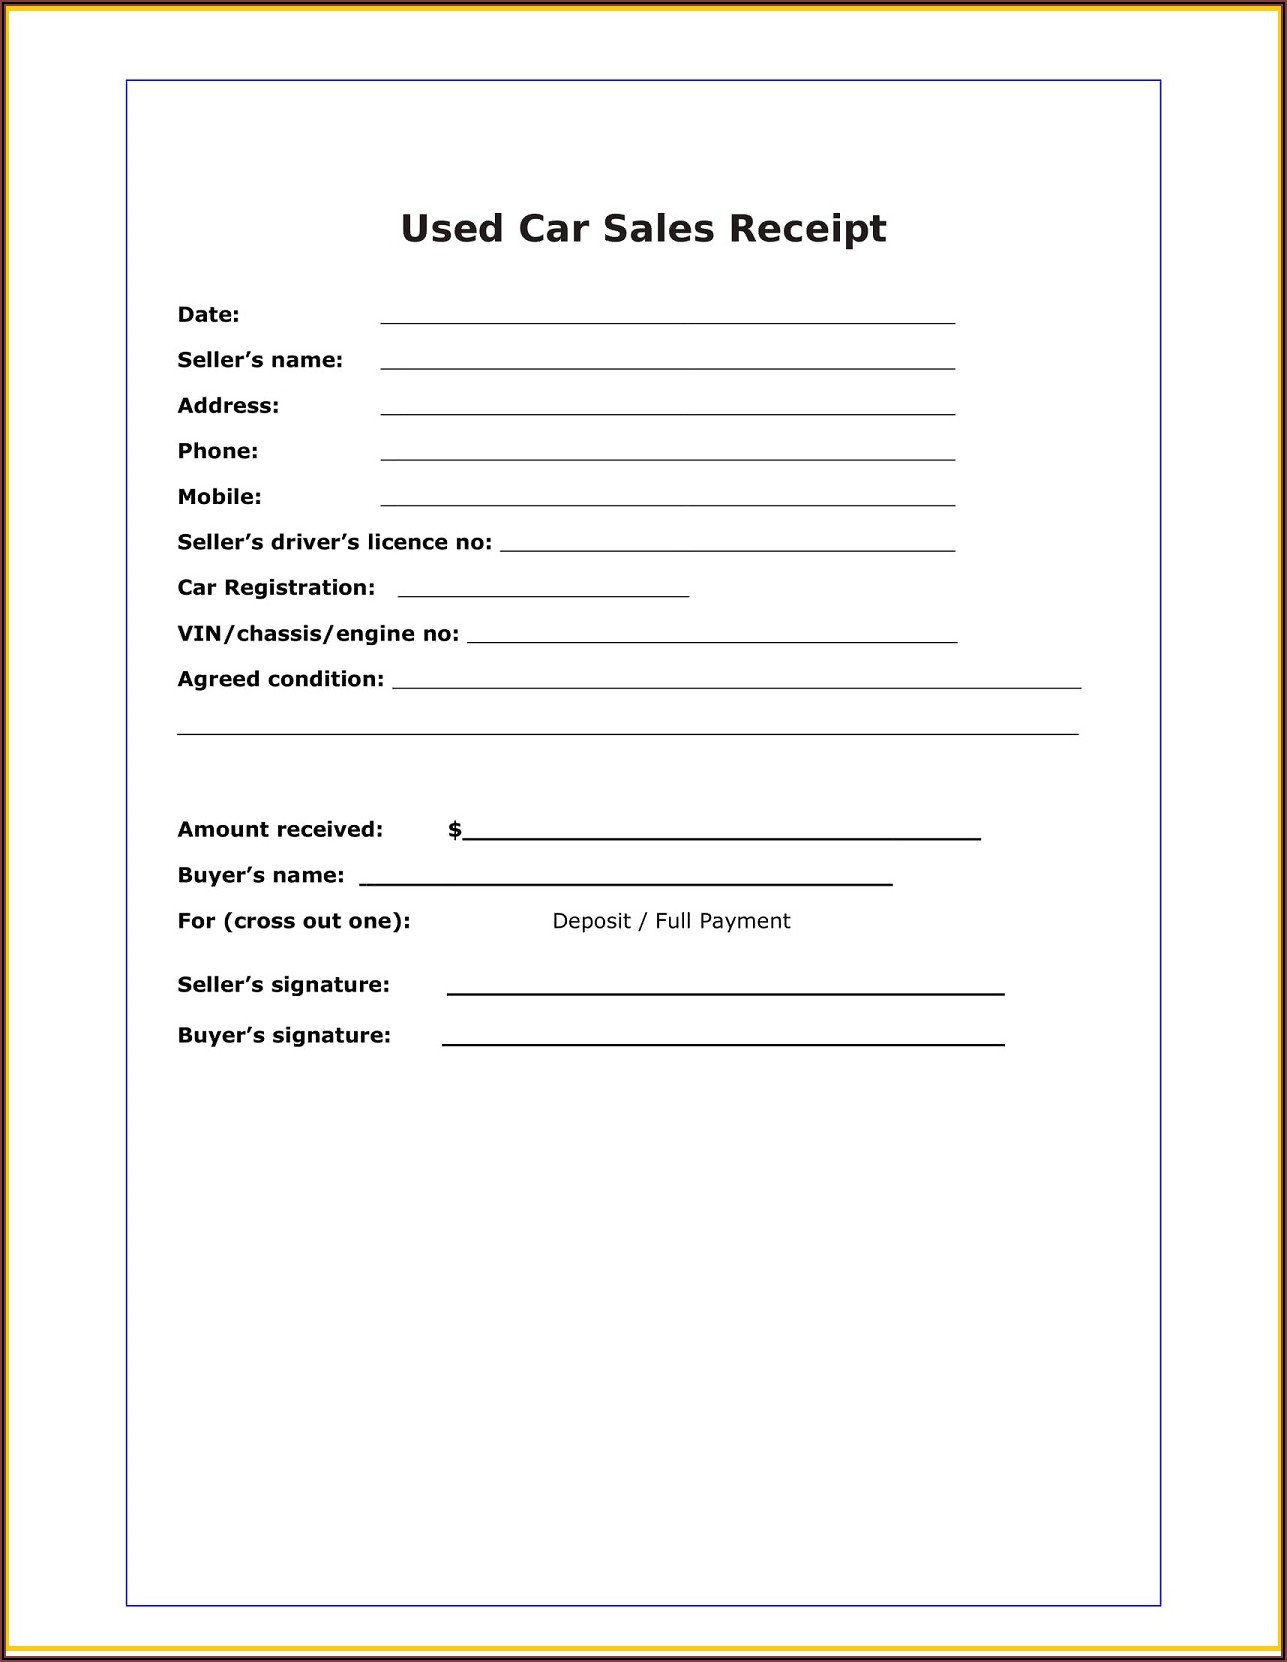 Used Car Sales Receipt Form